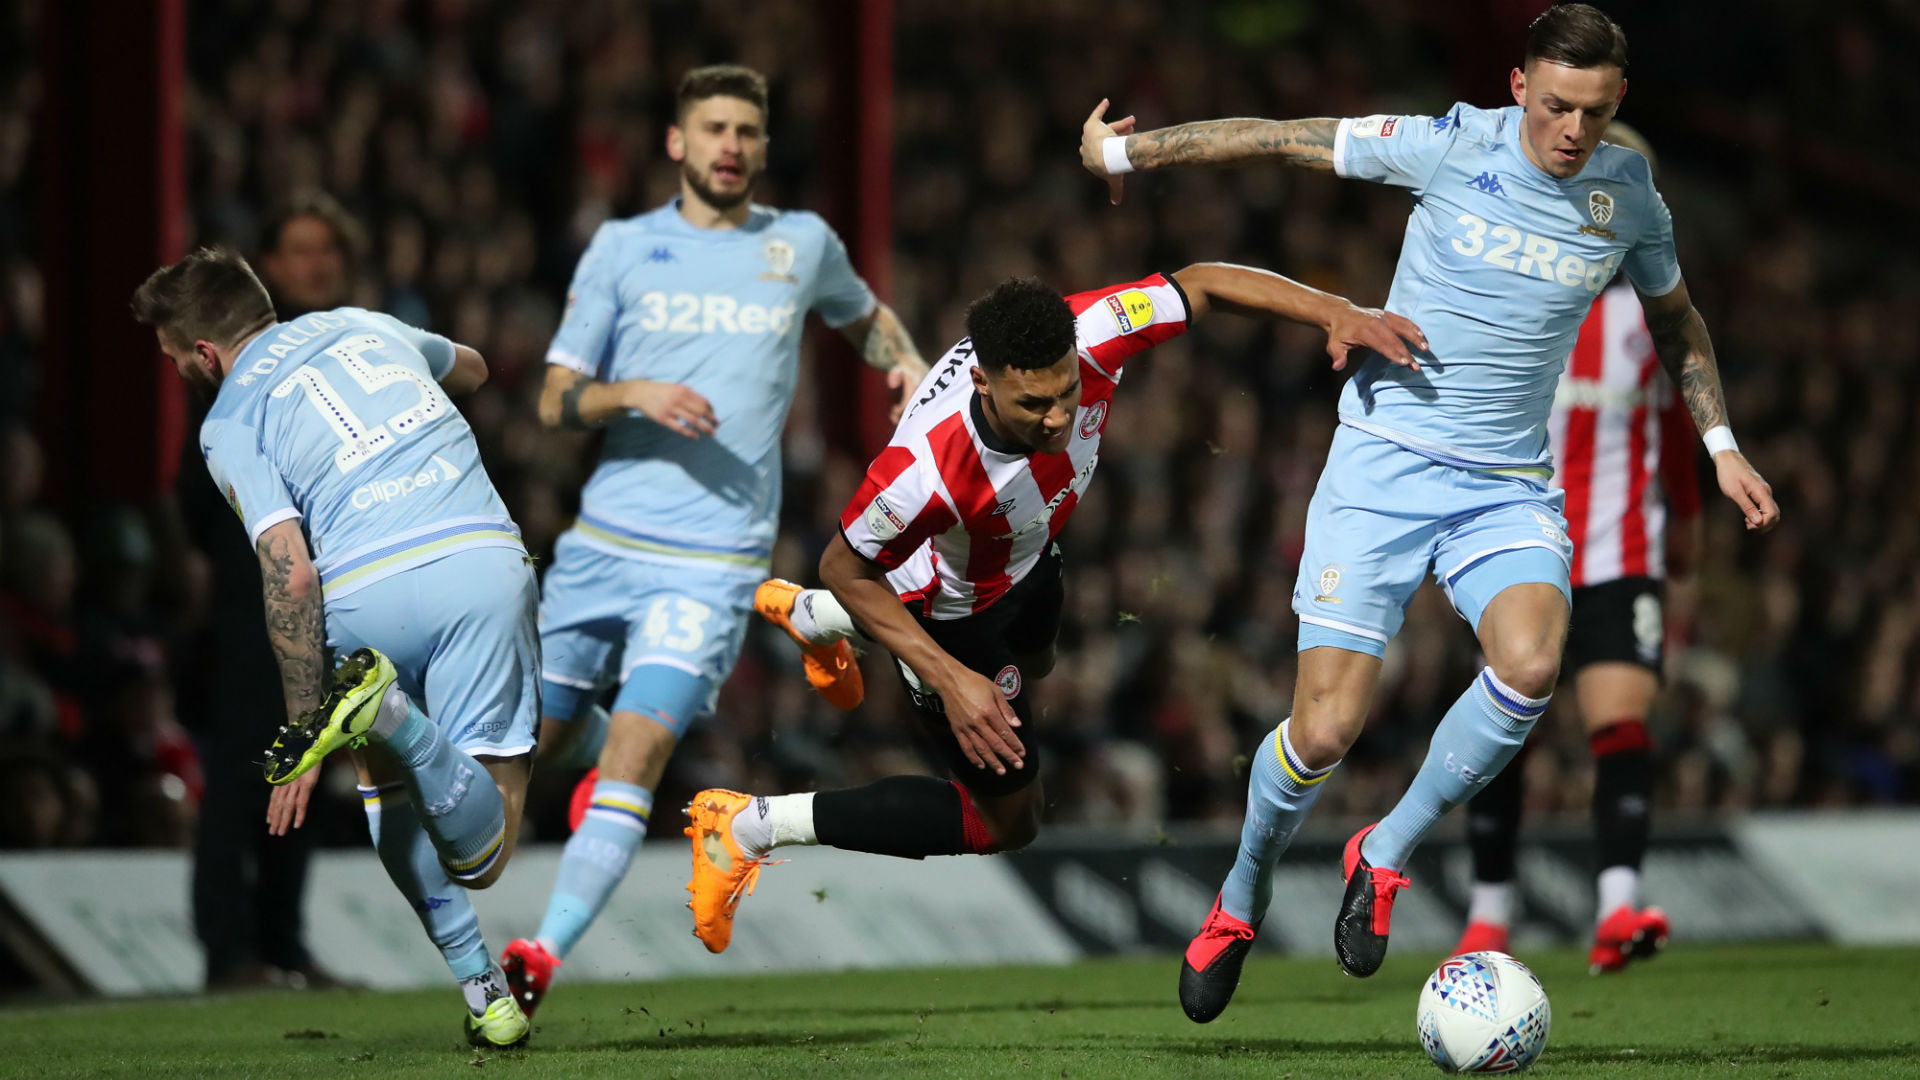 Championship: Leeds salvage draw despite another Casilla error, Forest lose at home to Charlton